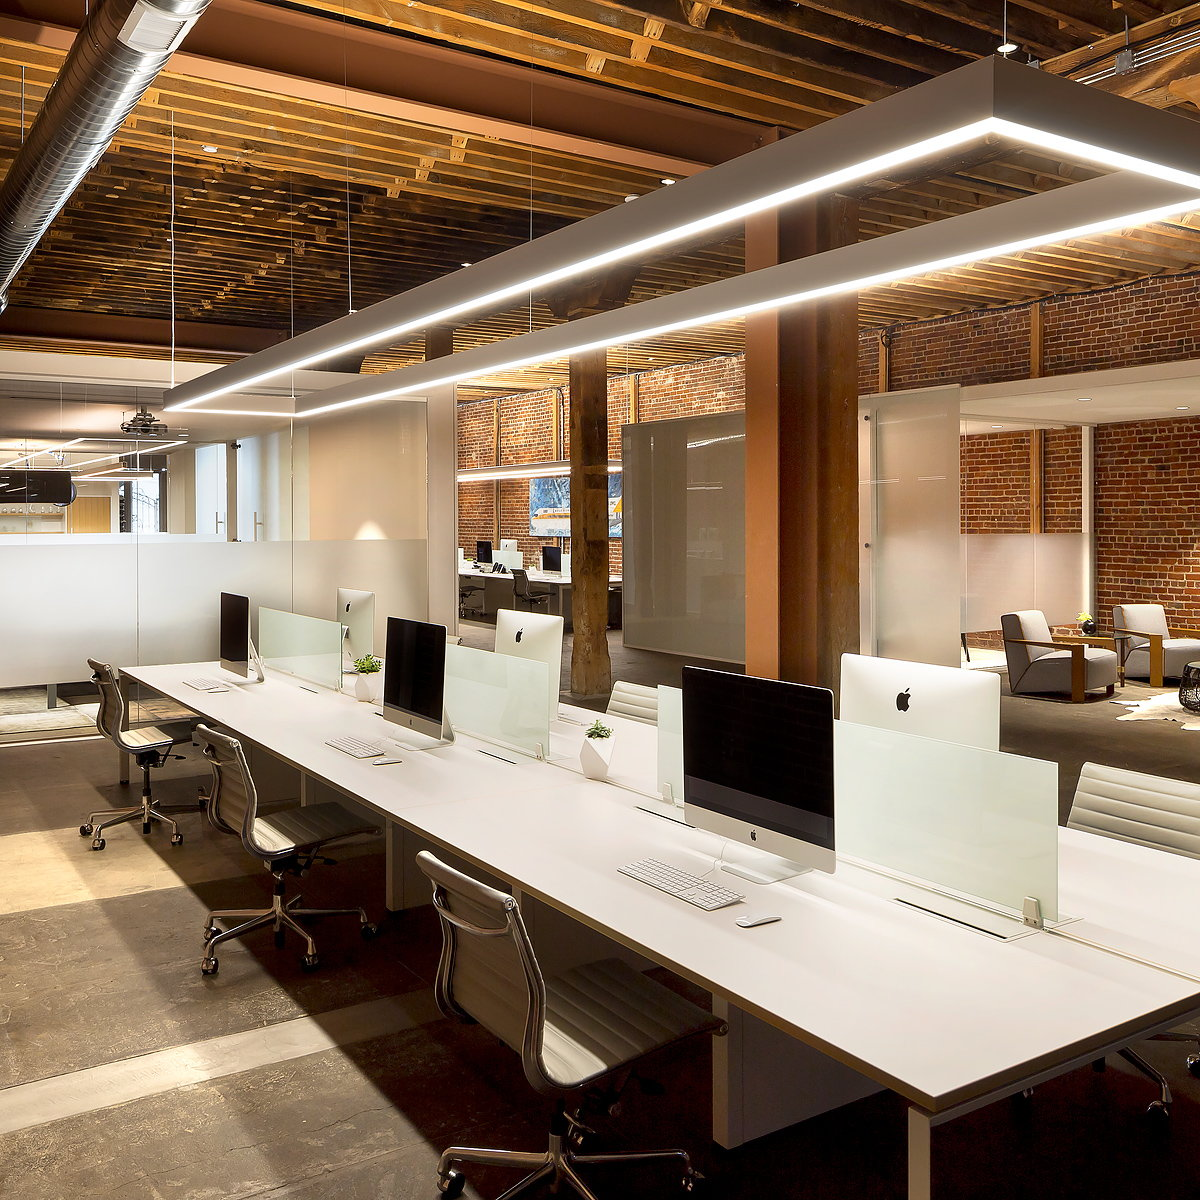 Scenic Advisement Offices by Feldman Architecture